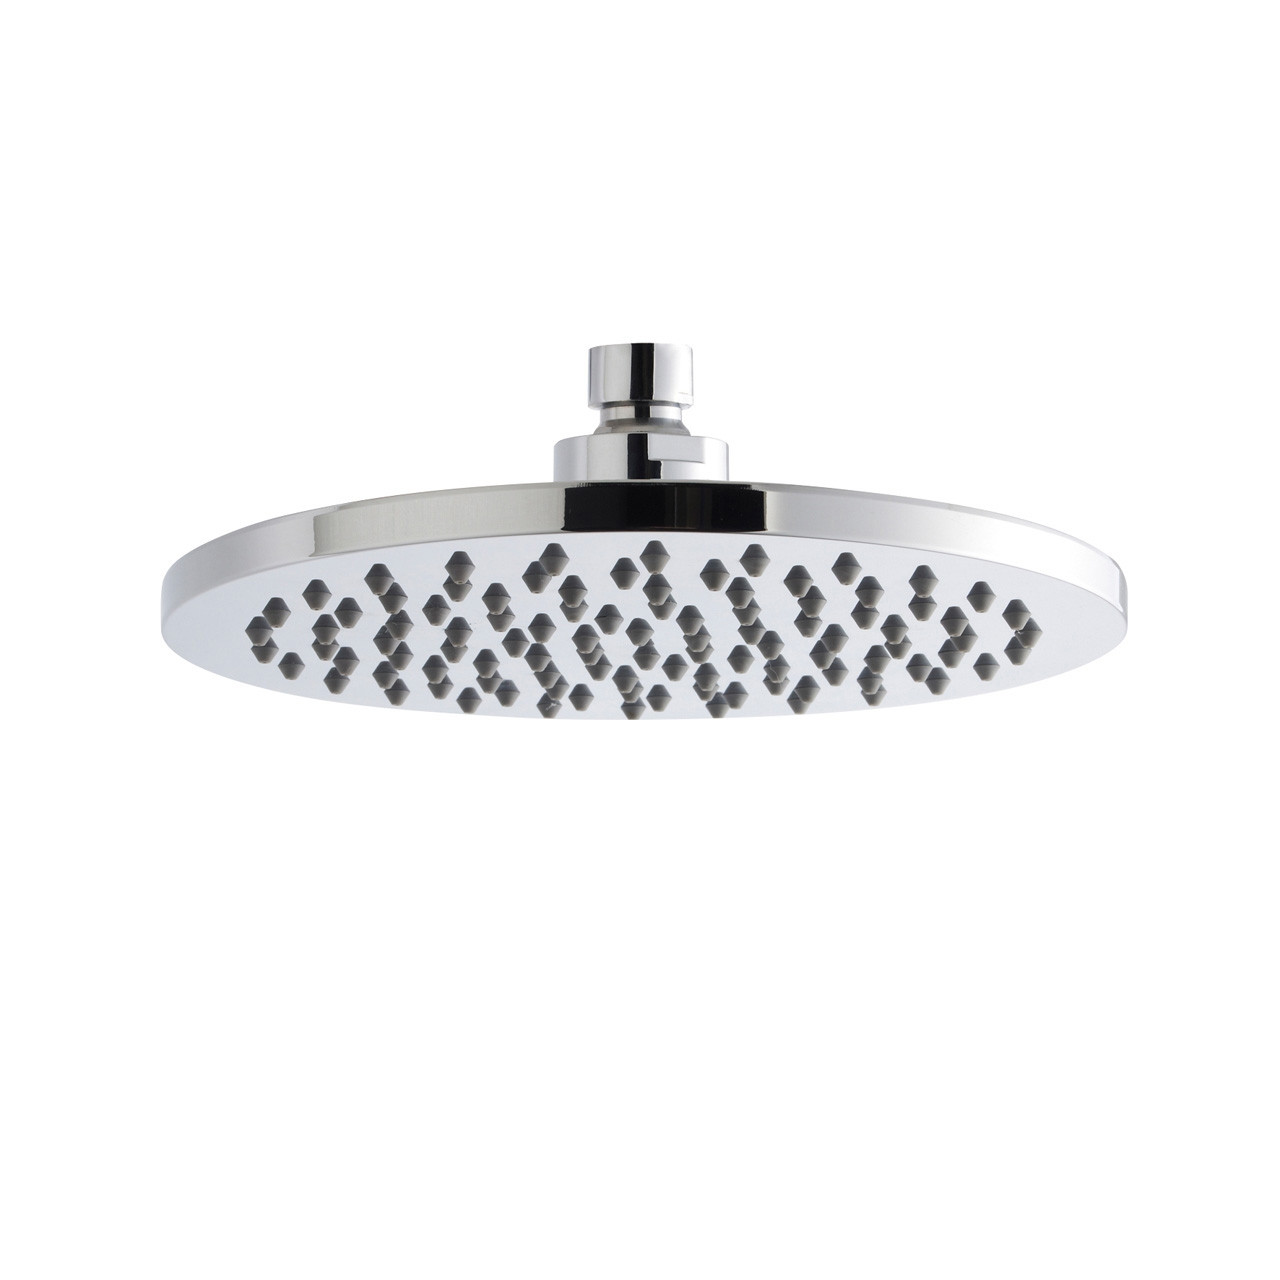 Premier Round Shower Head 200mm - HEAD49